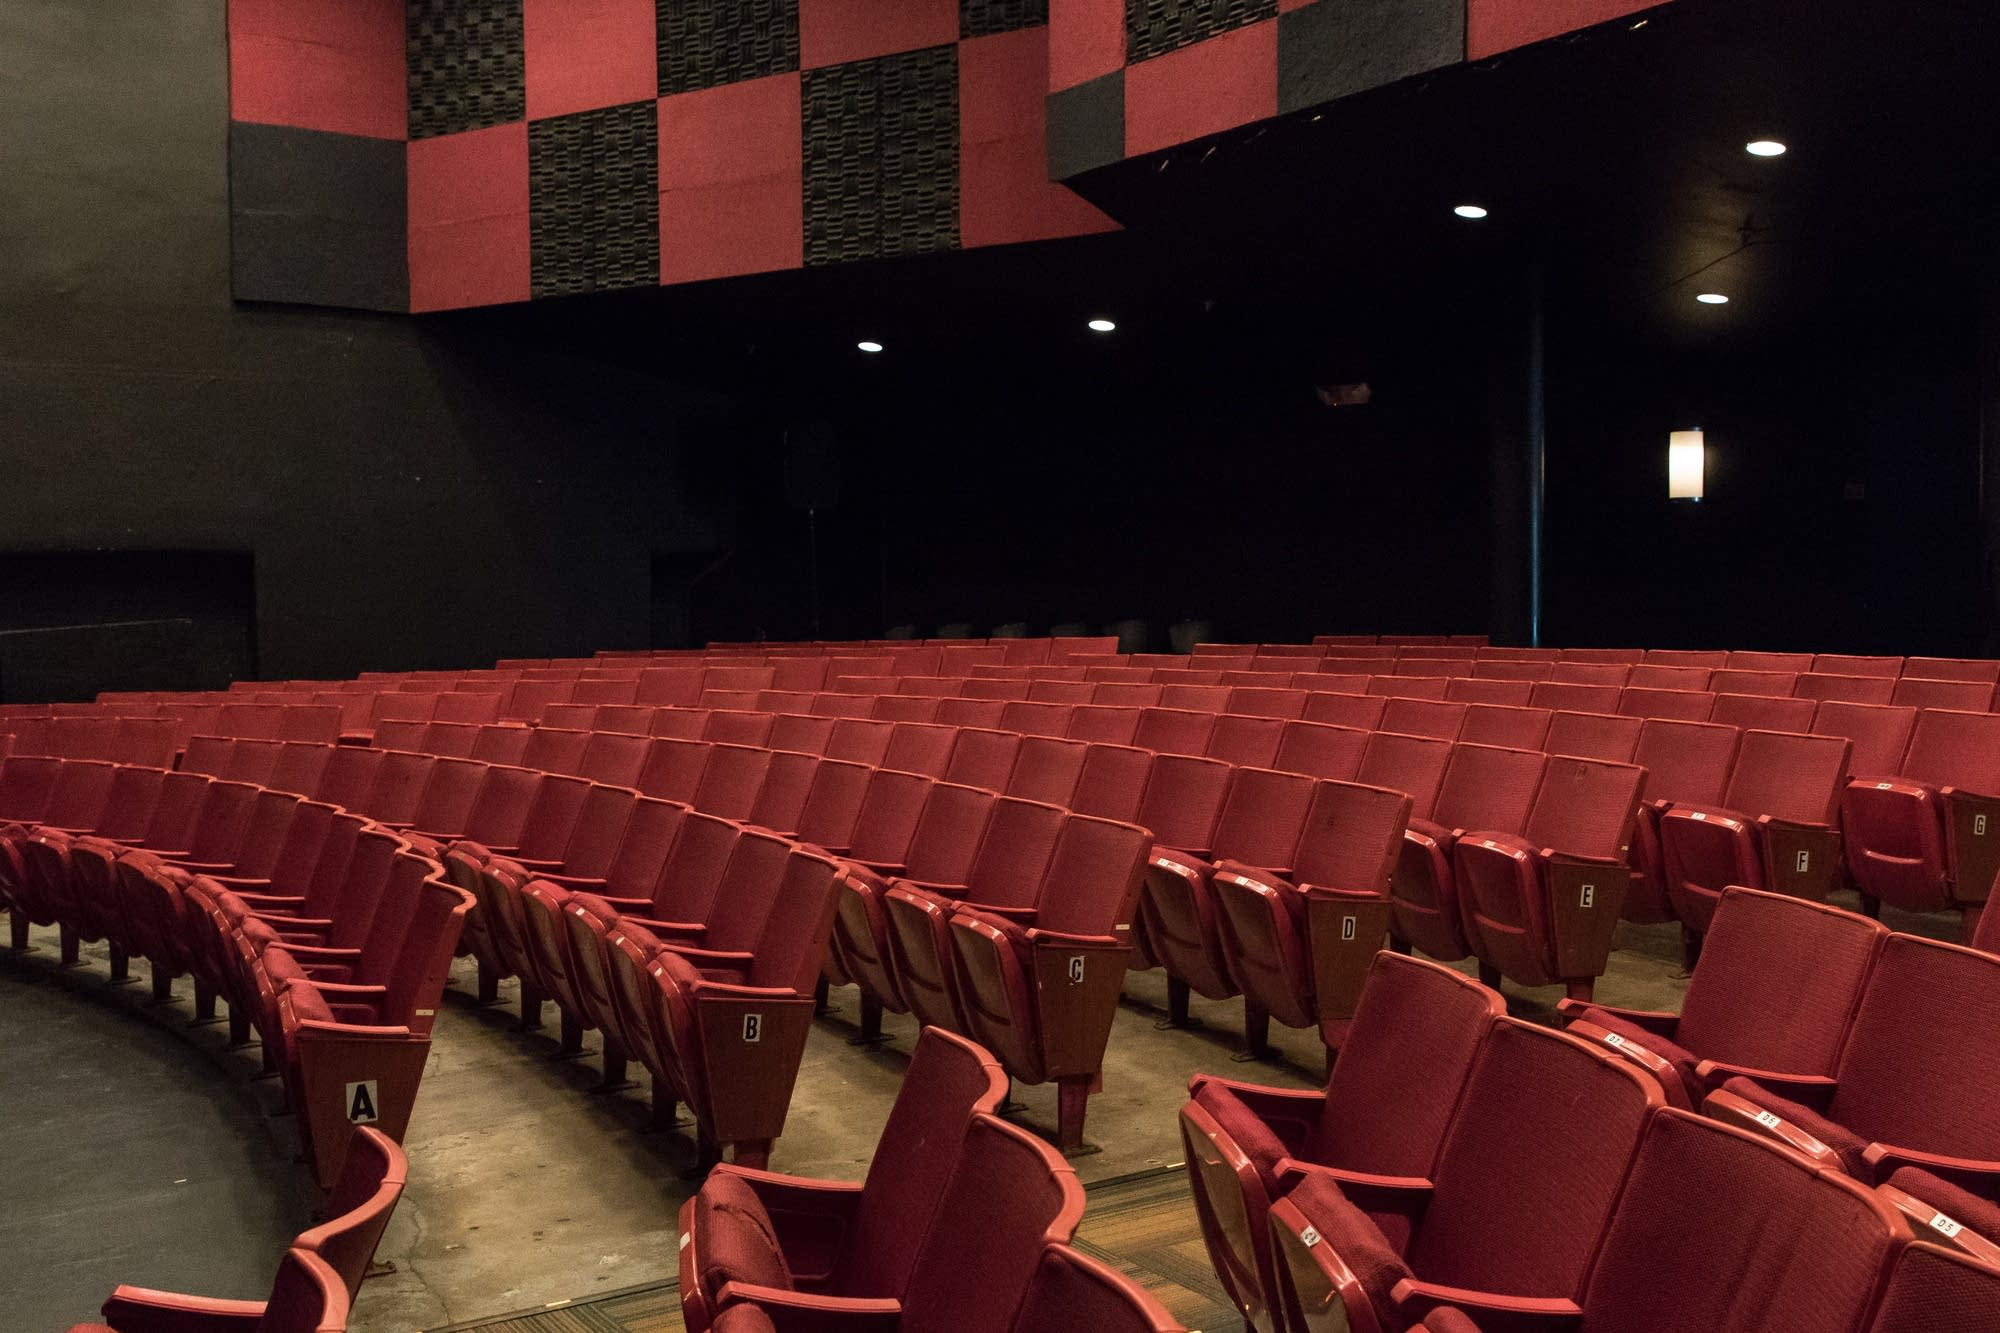 Empty seats await guests during the Capri Theater's open house.